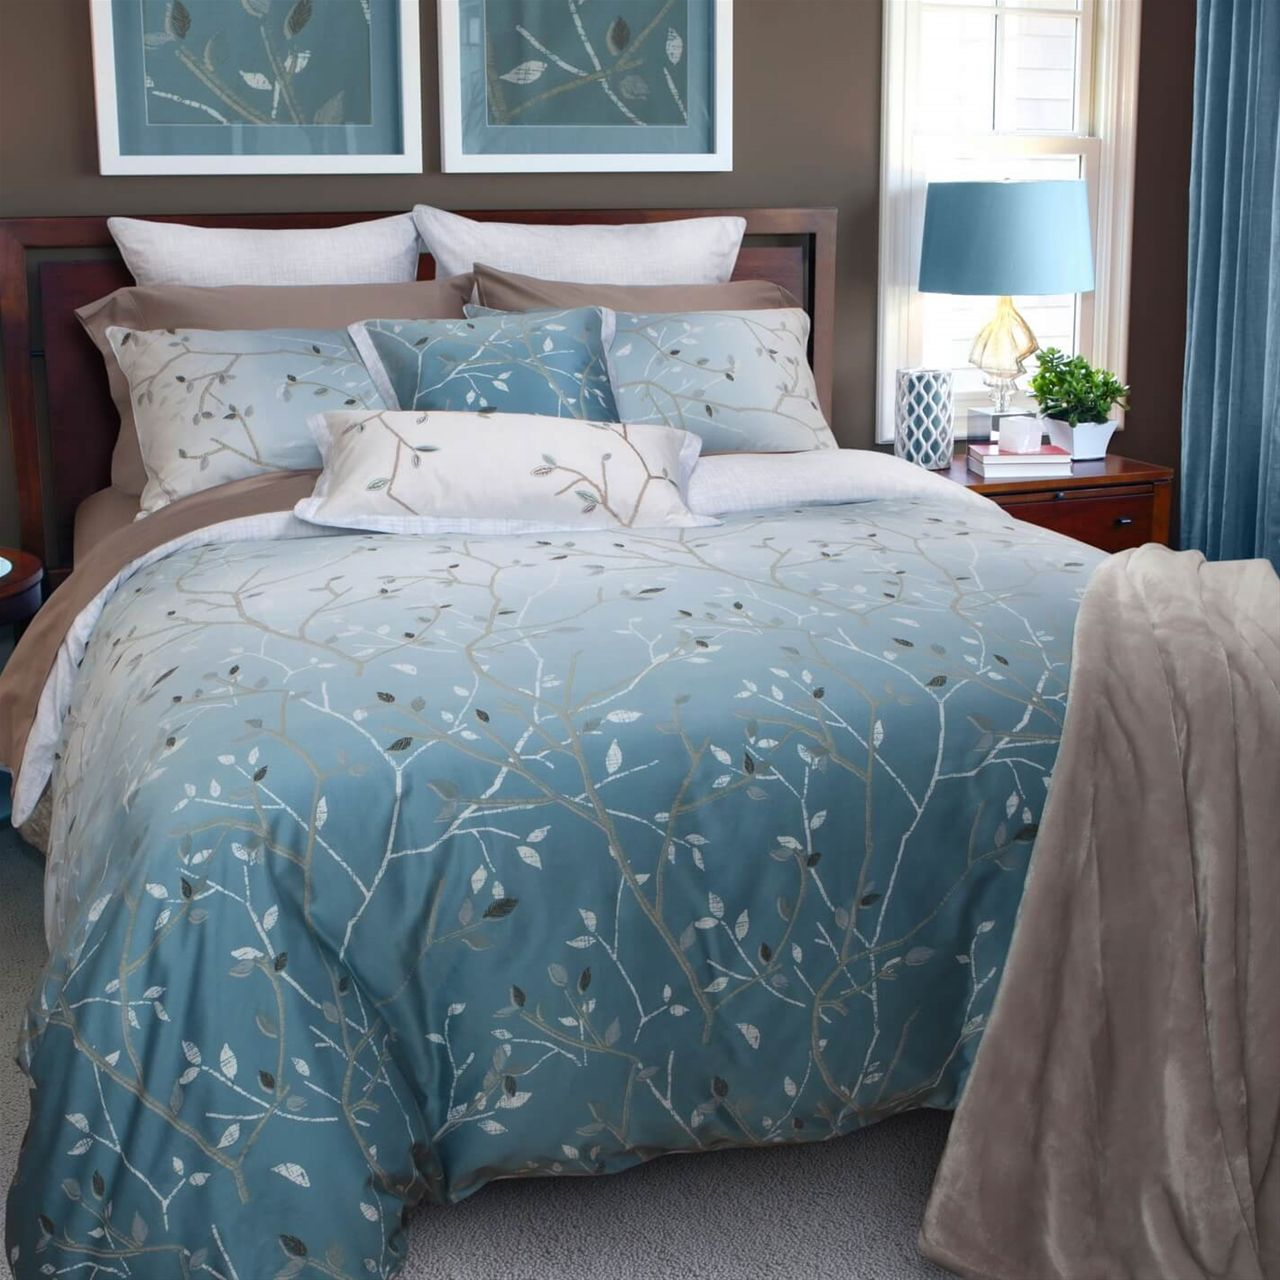 shop qe home quilts etc for exclusive luxury linens bedding collections u0026 duvet